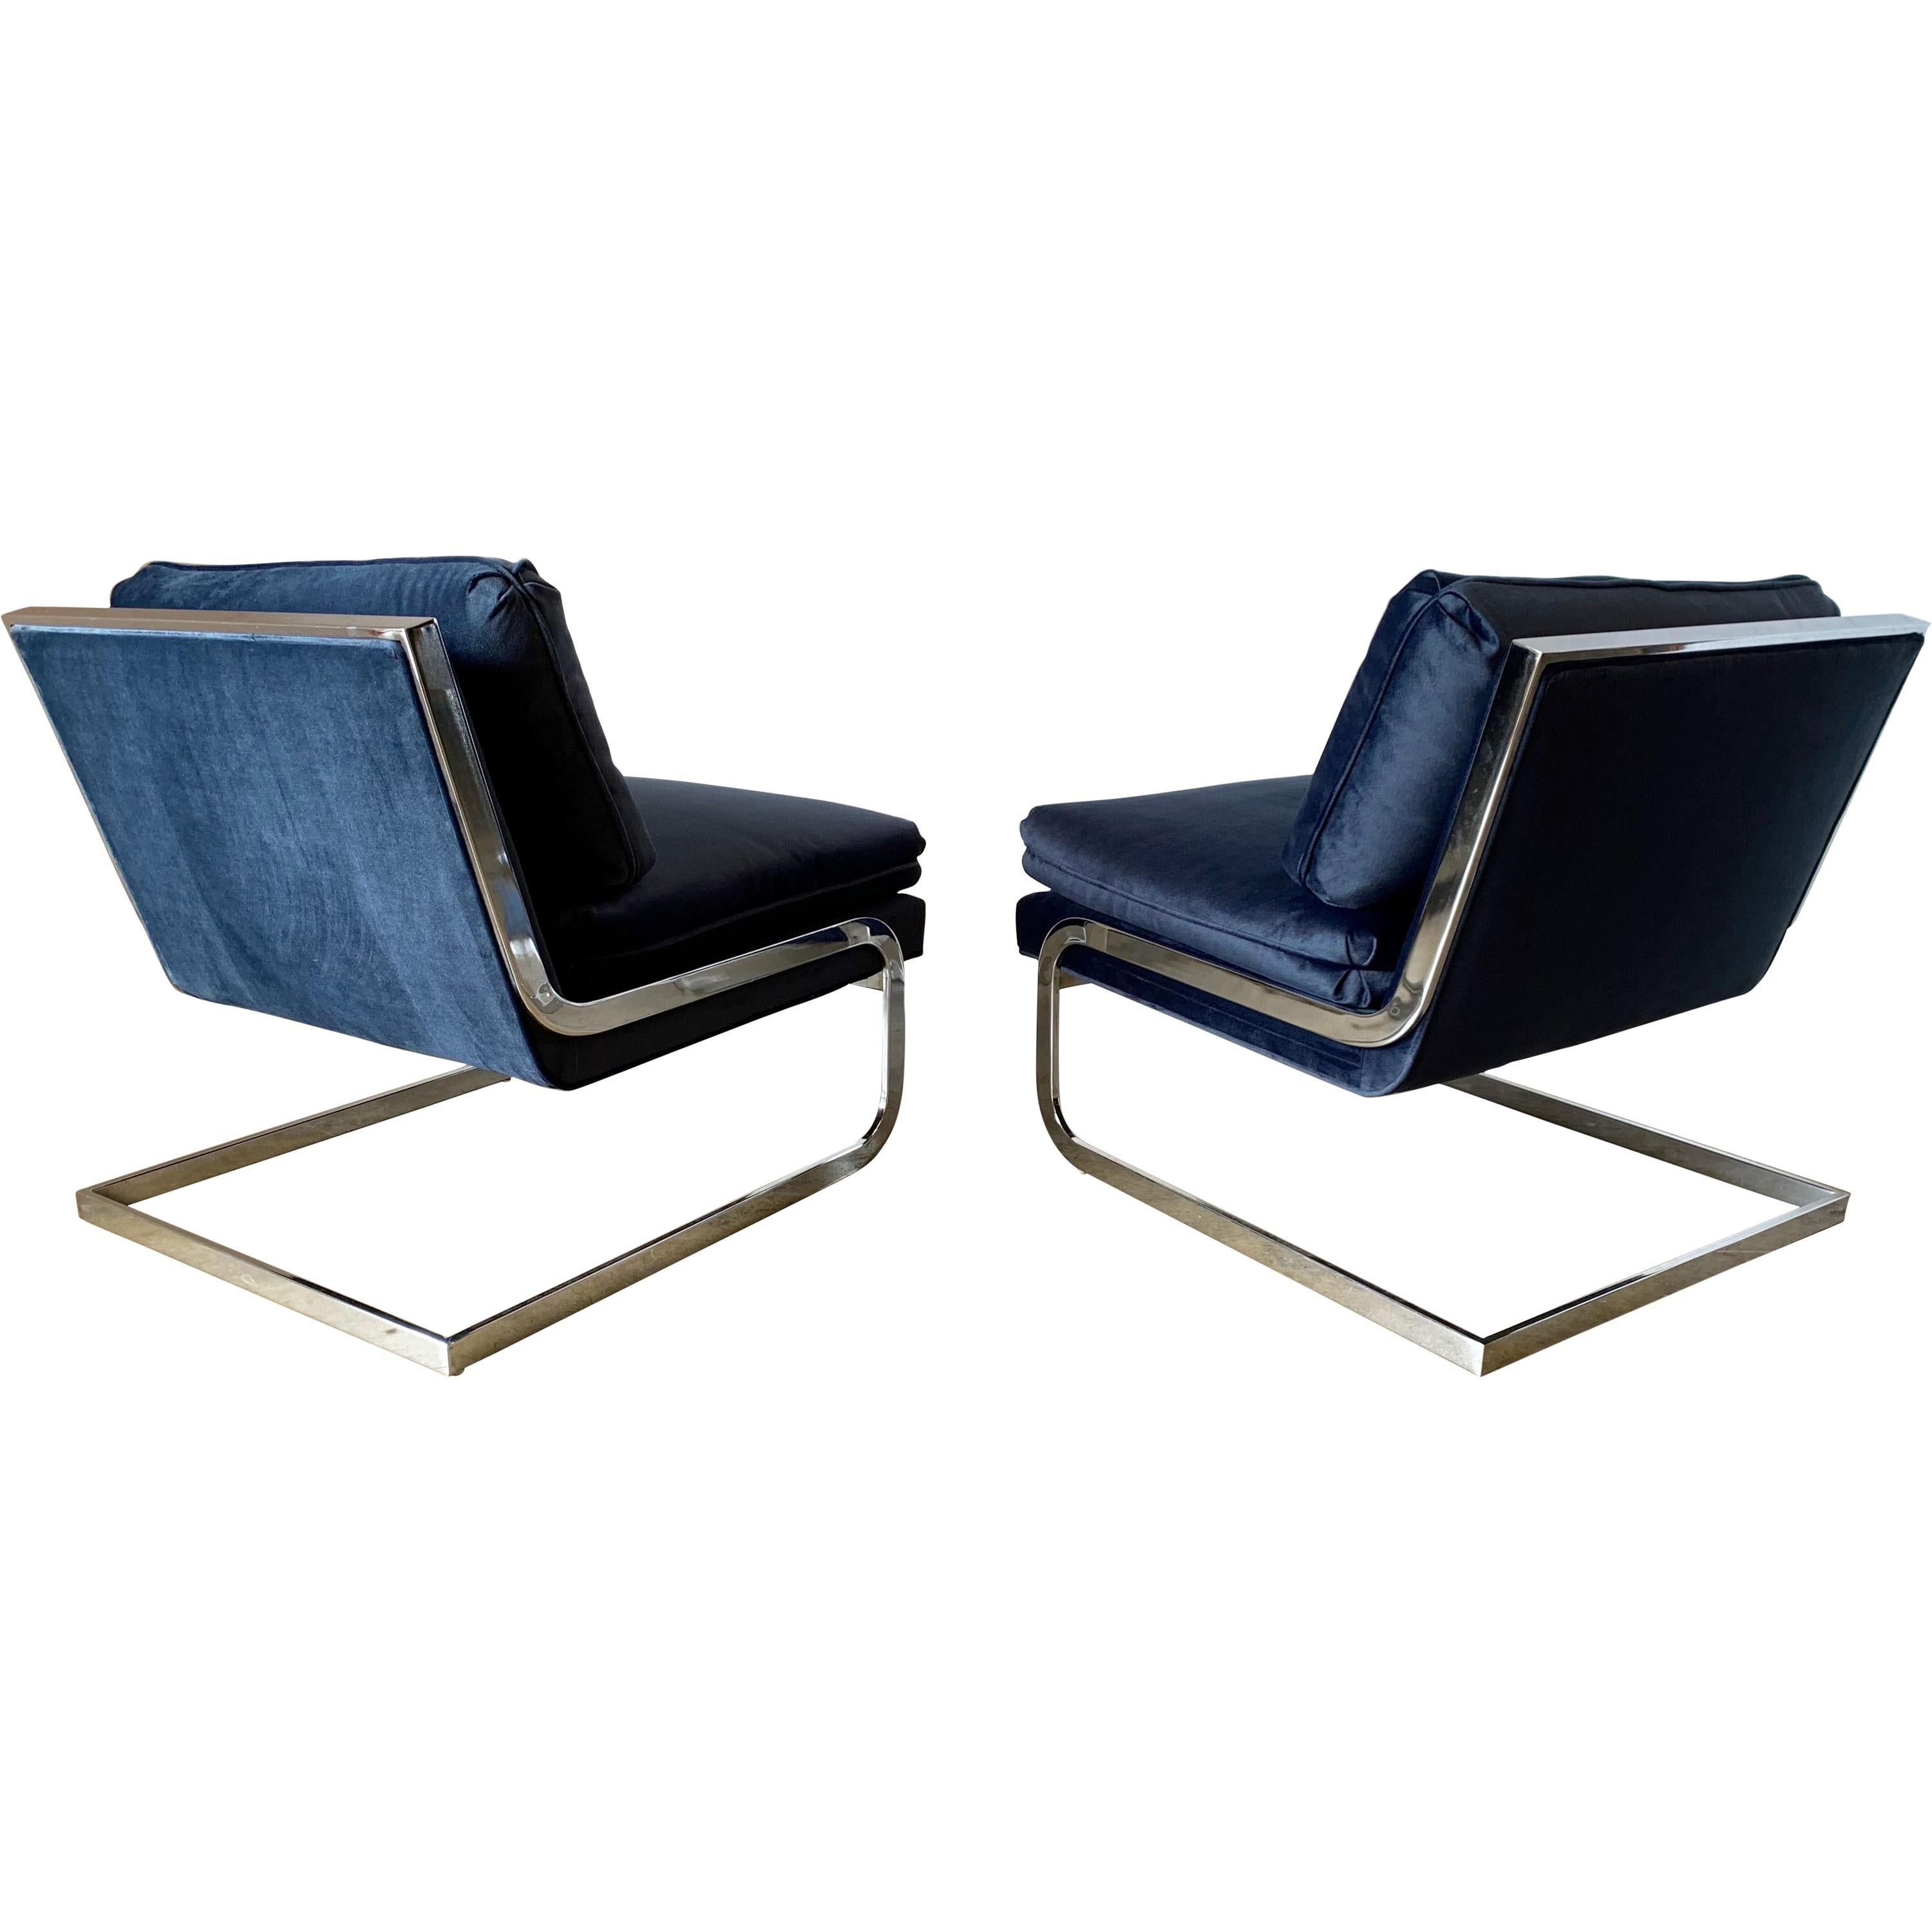 Pair of Cantilever Chrome Lounge Chairs